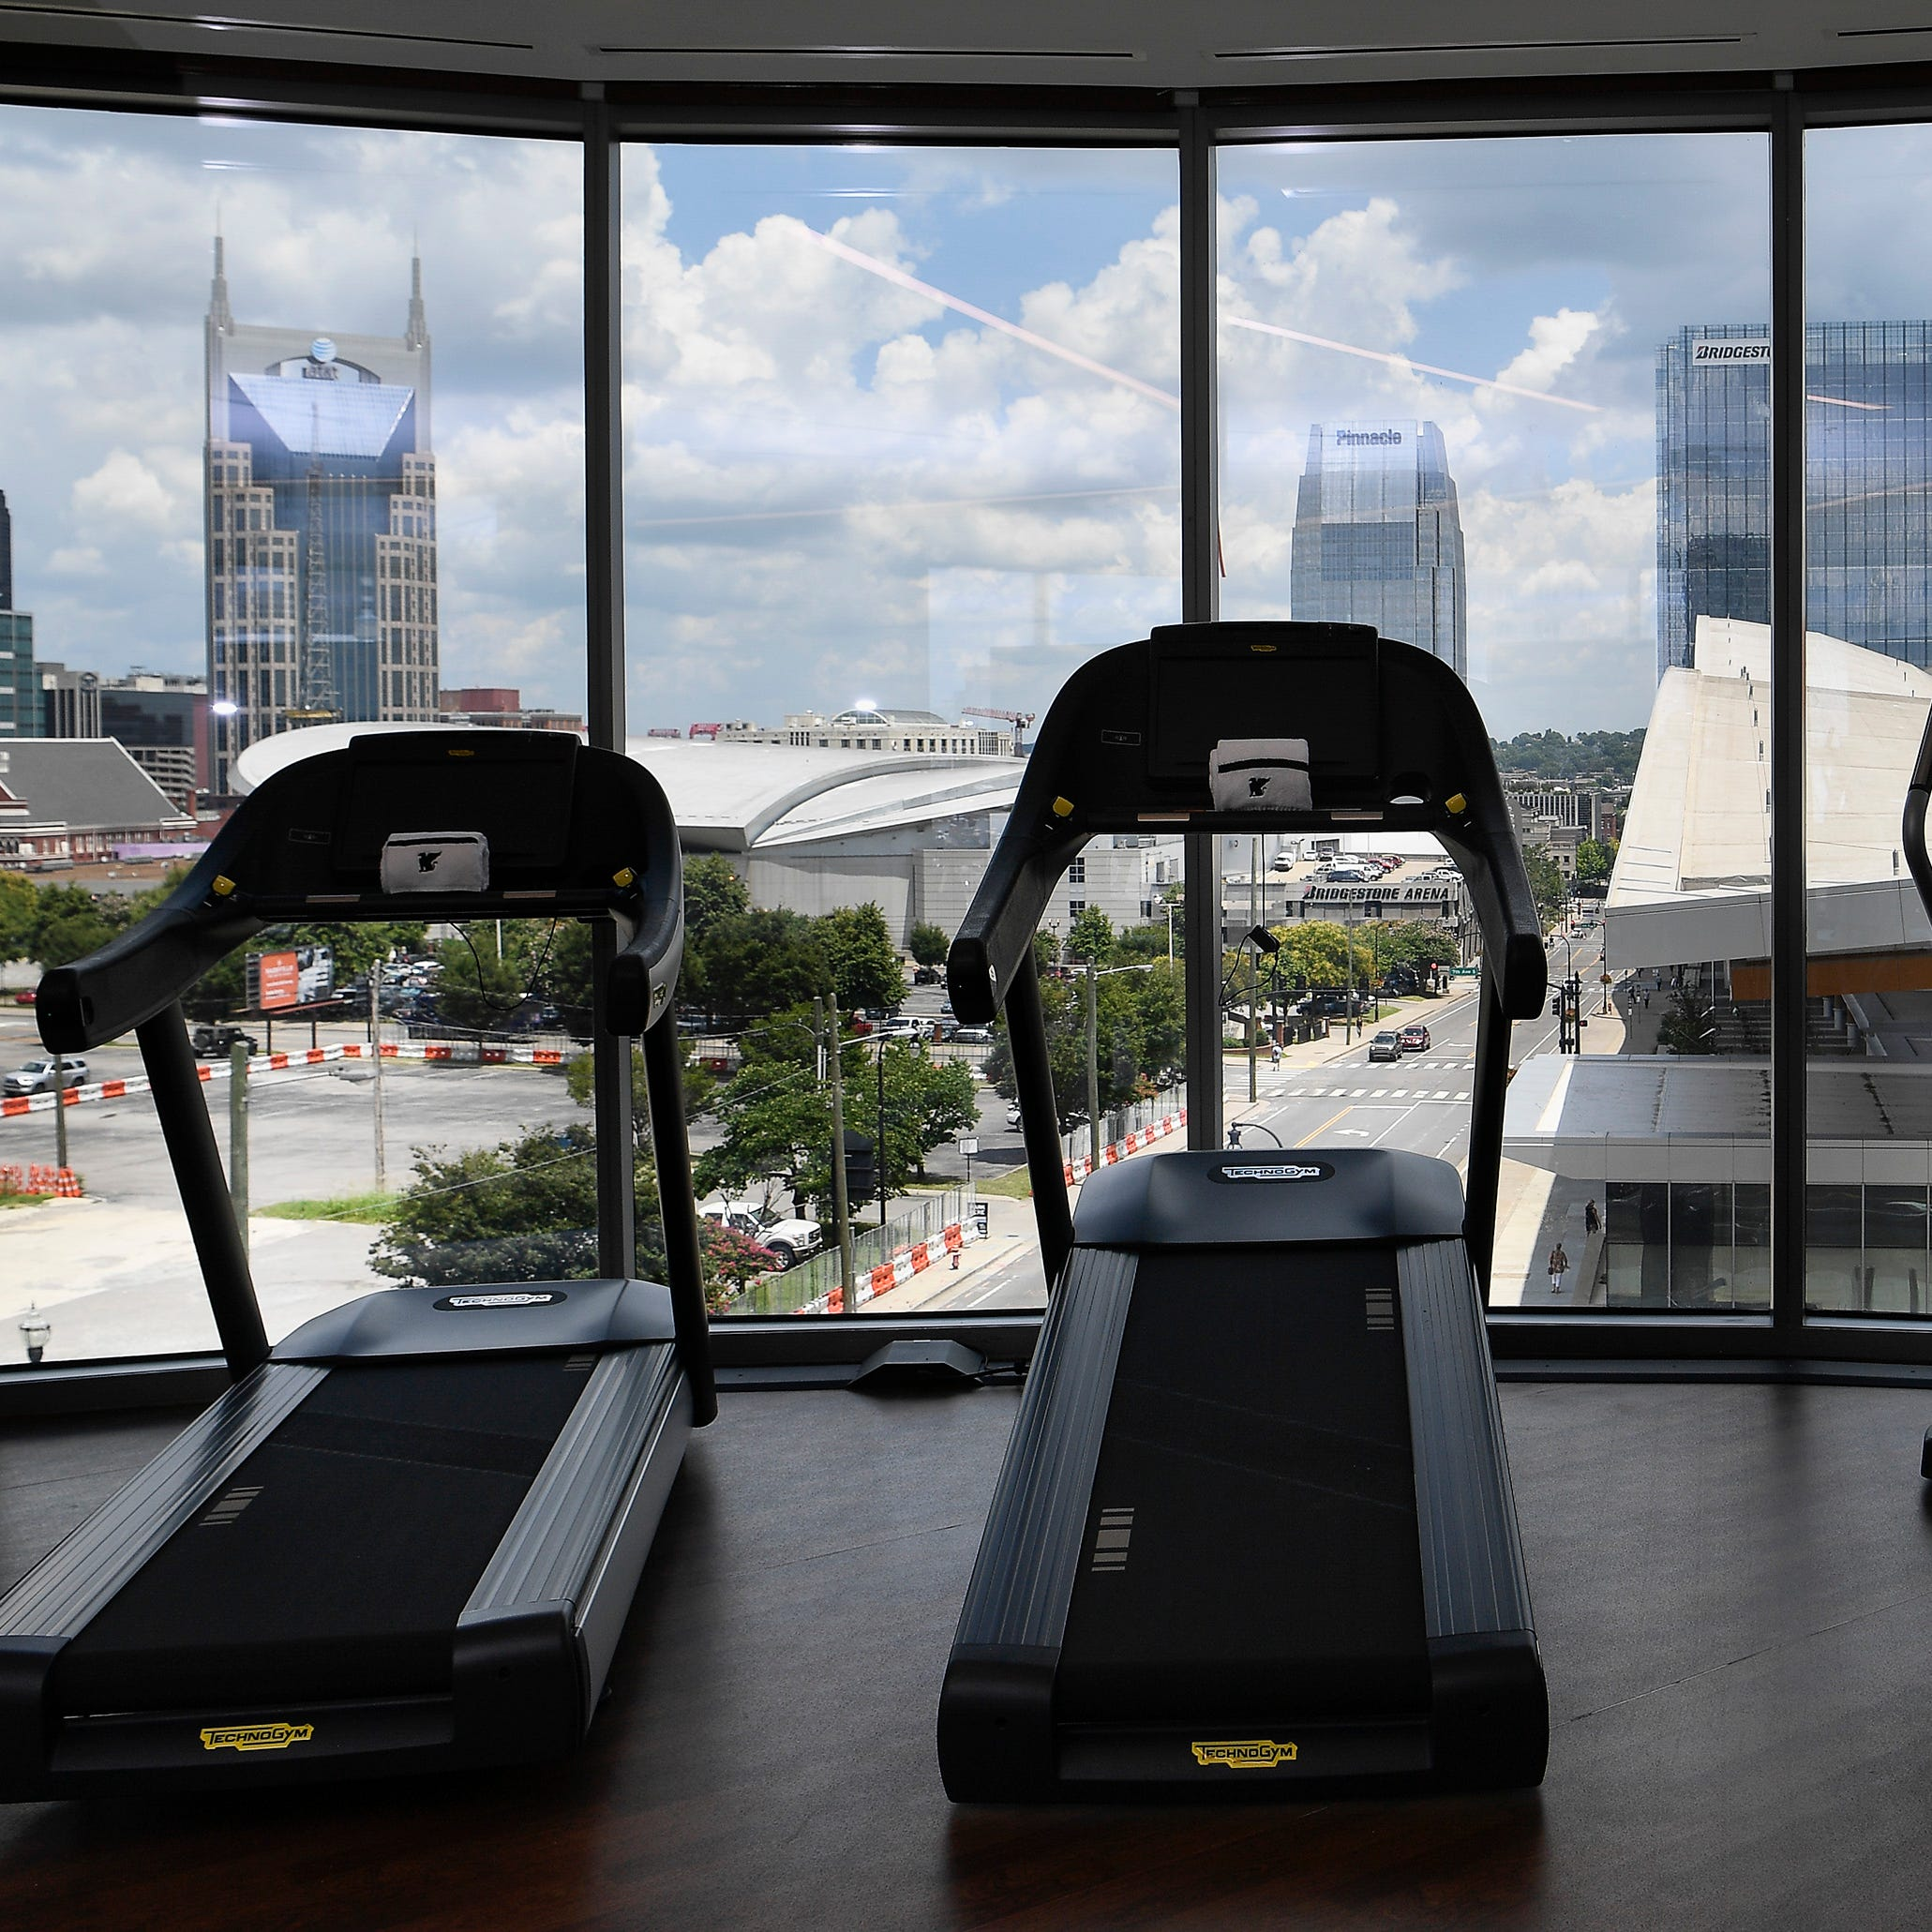 First look: JW Marriott downtown Nashville's tallest, newest luxury hotel